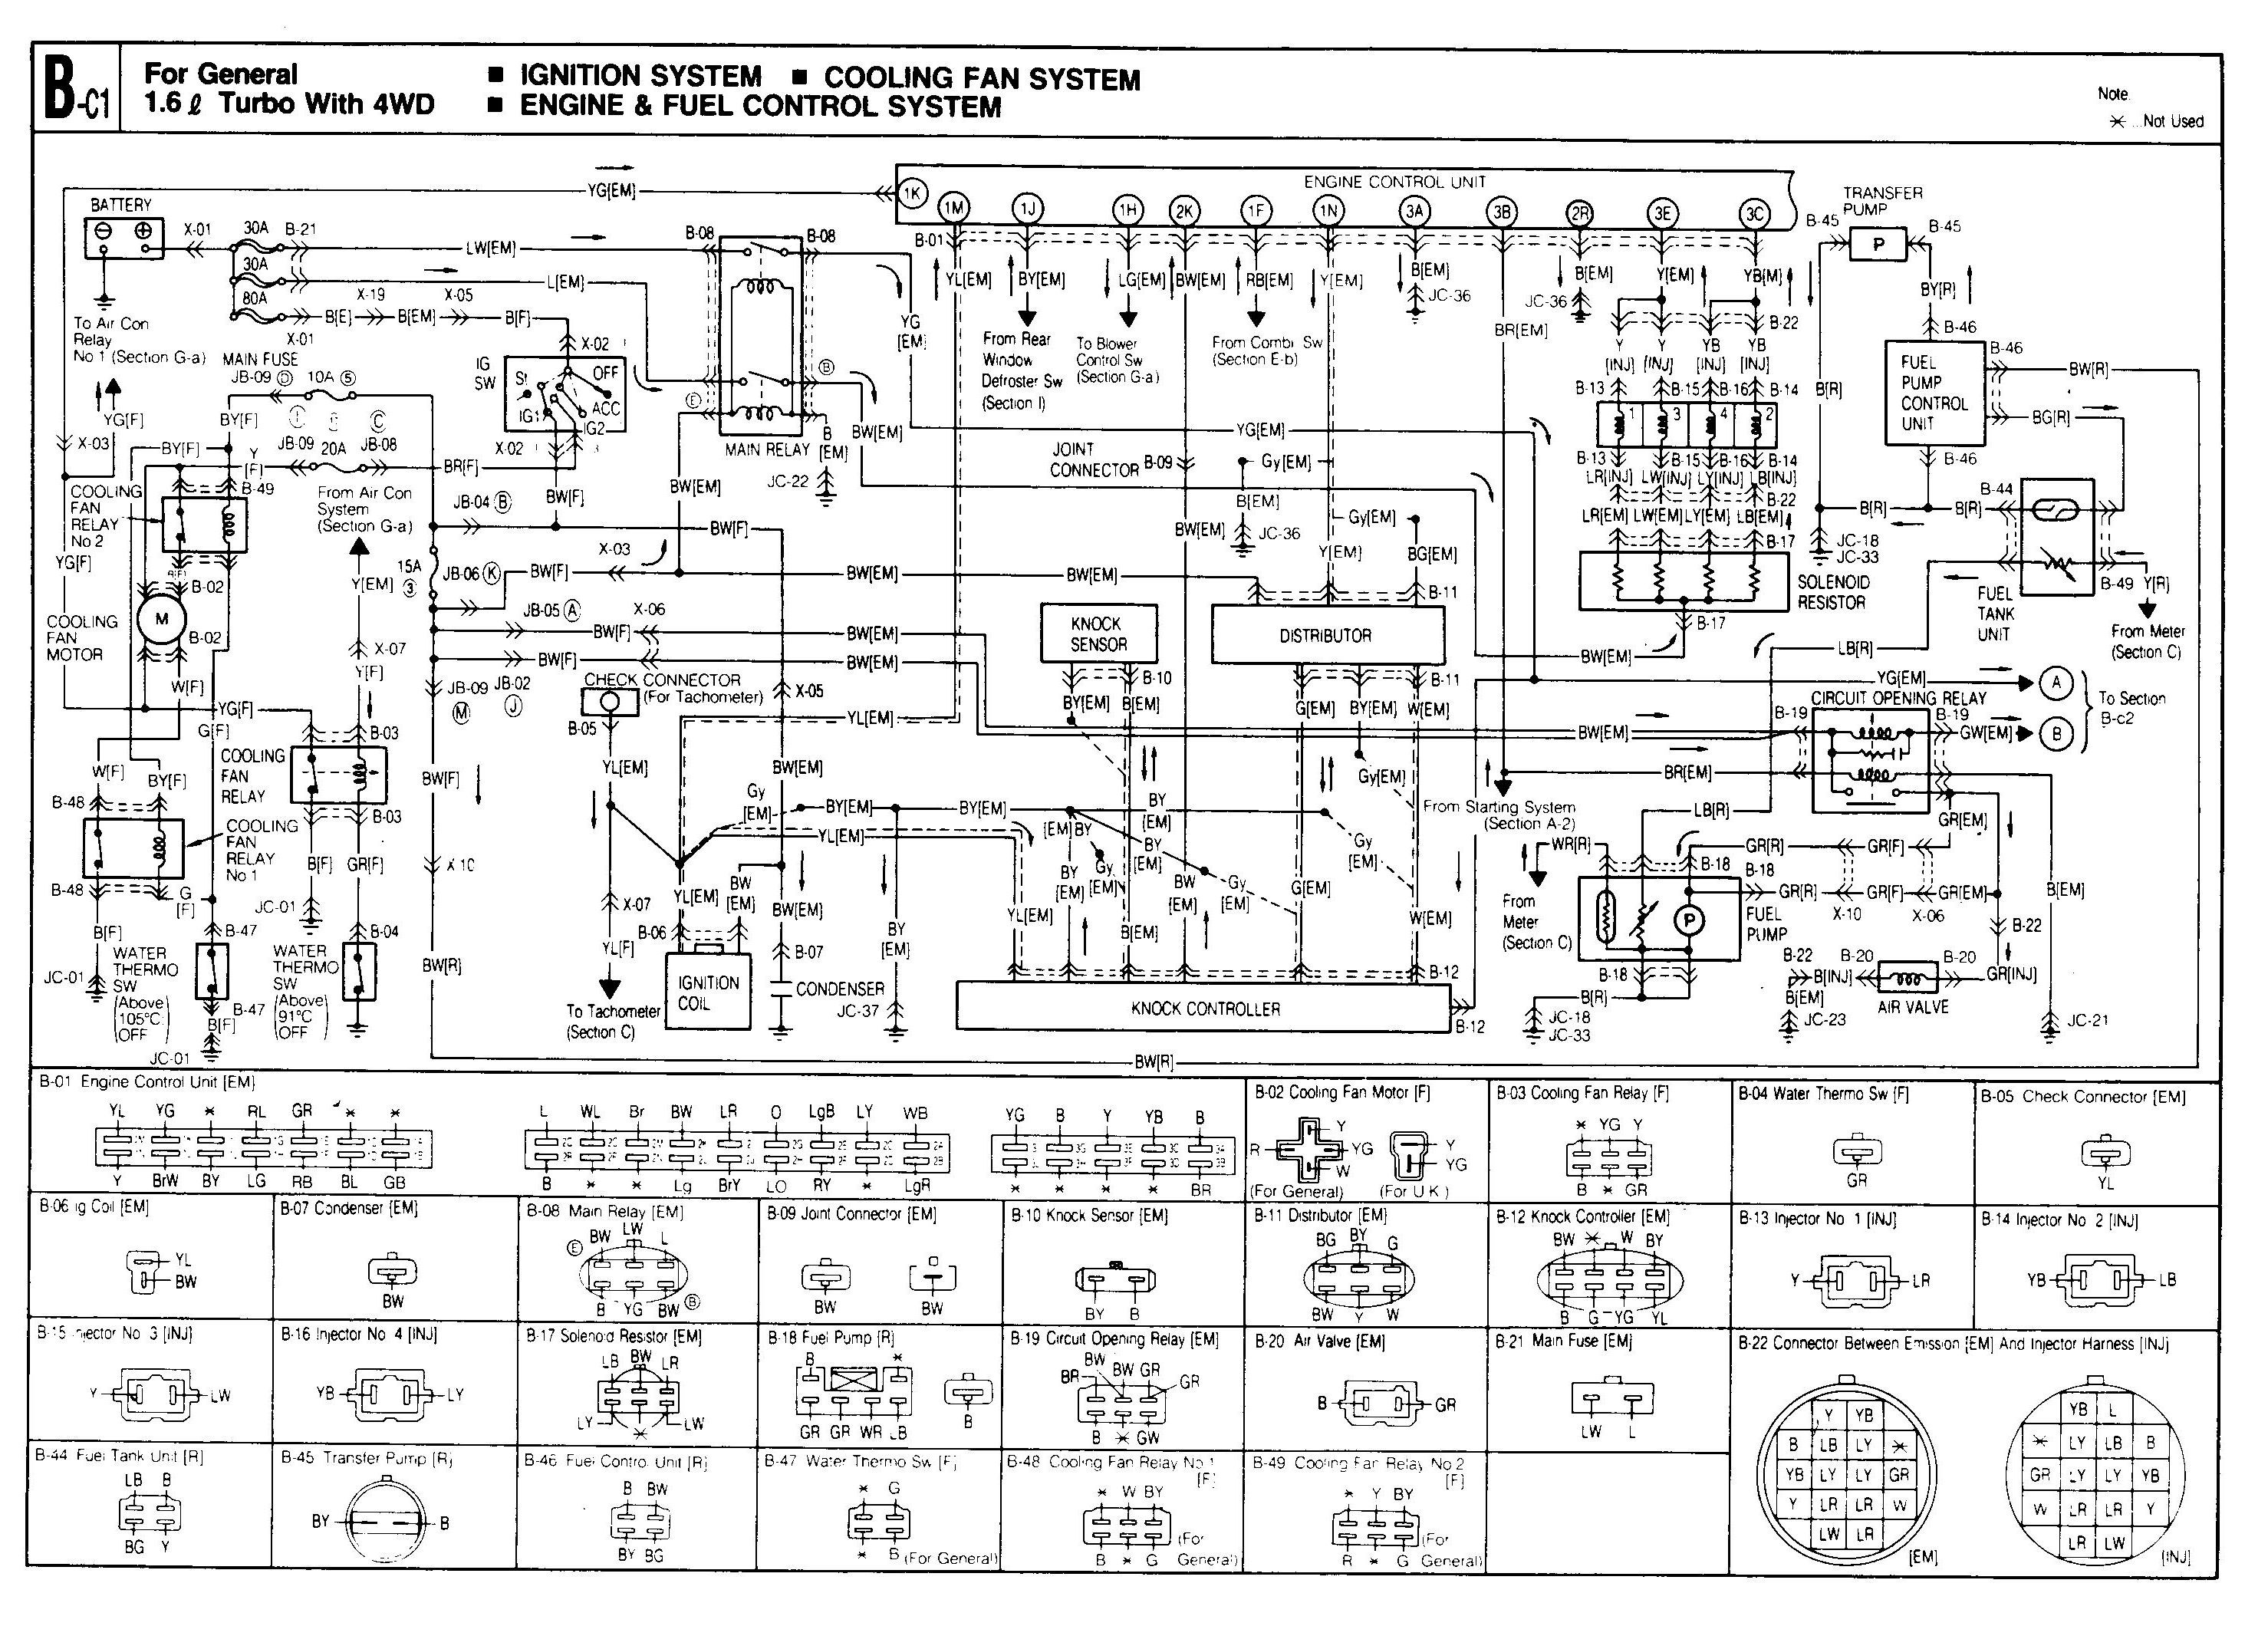 1989 Mazda 323 Wiring Diagram wiring diagrams